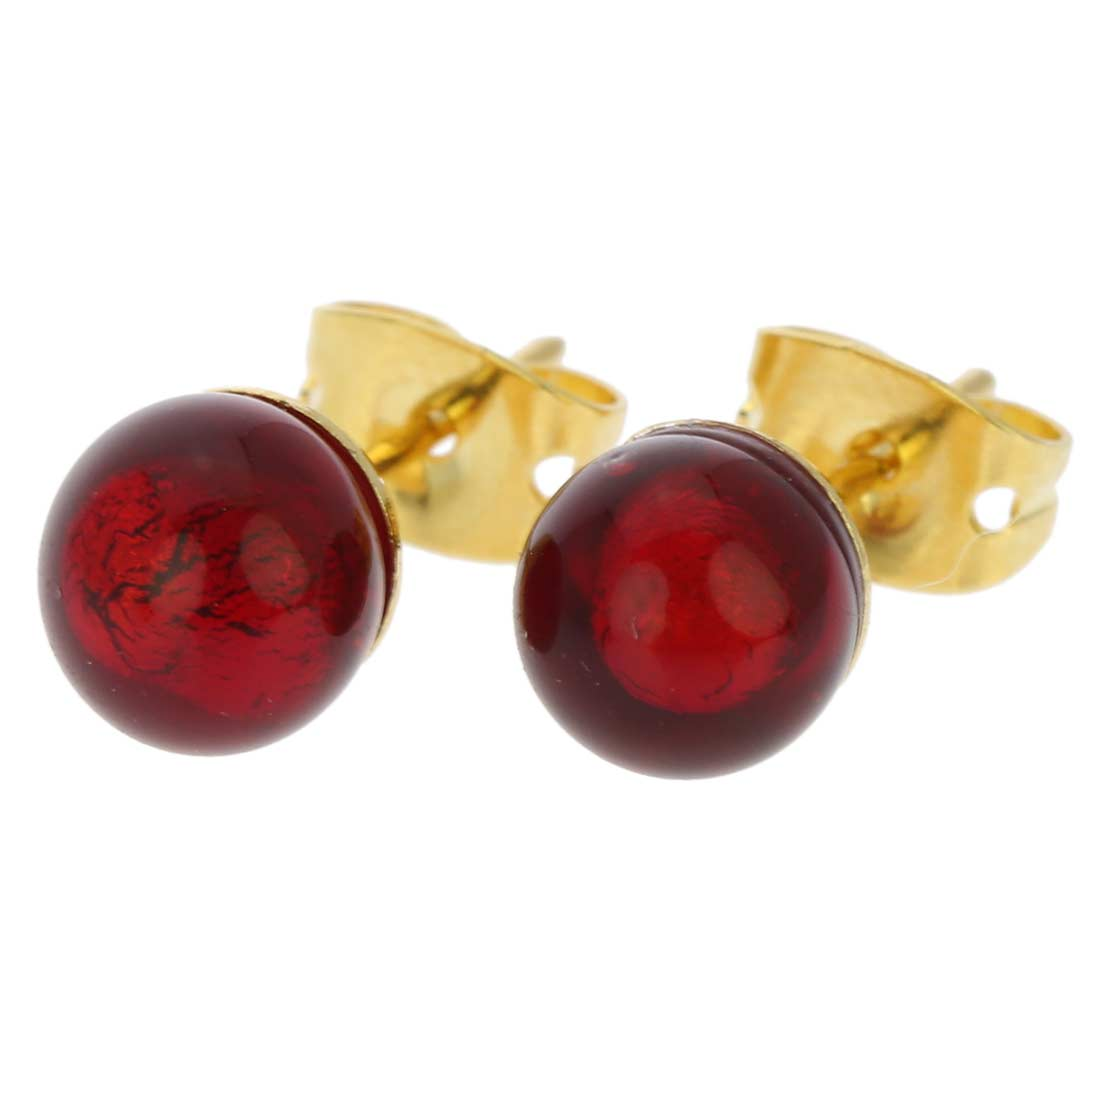 Murano Tiny Stud Earrings - Ruby Red